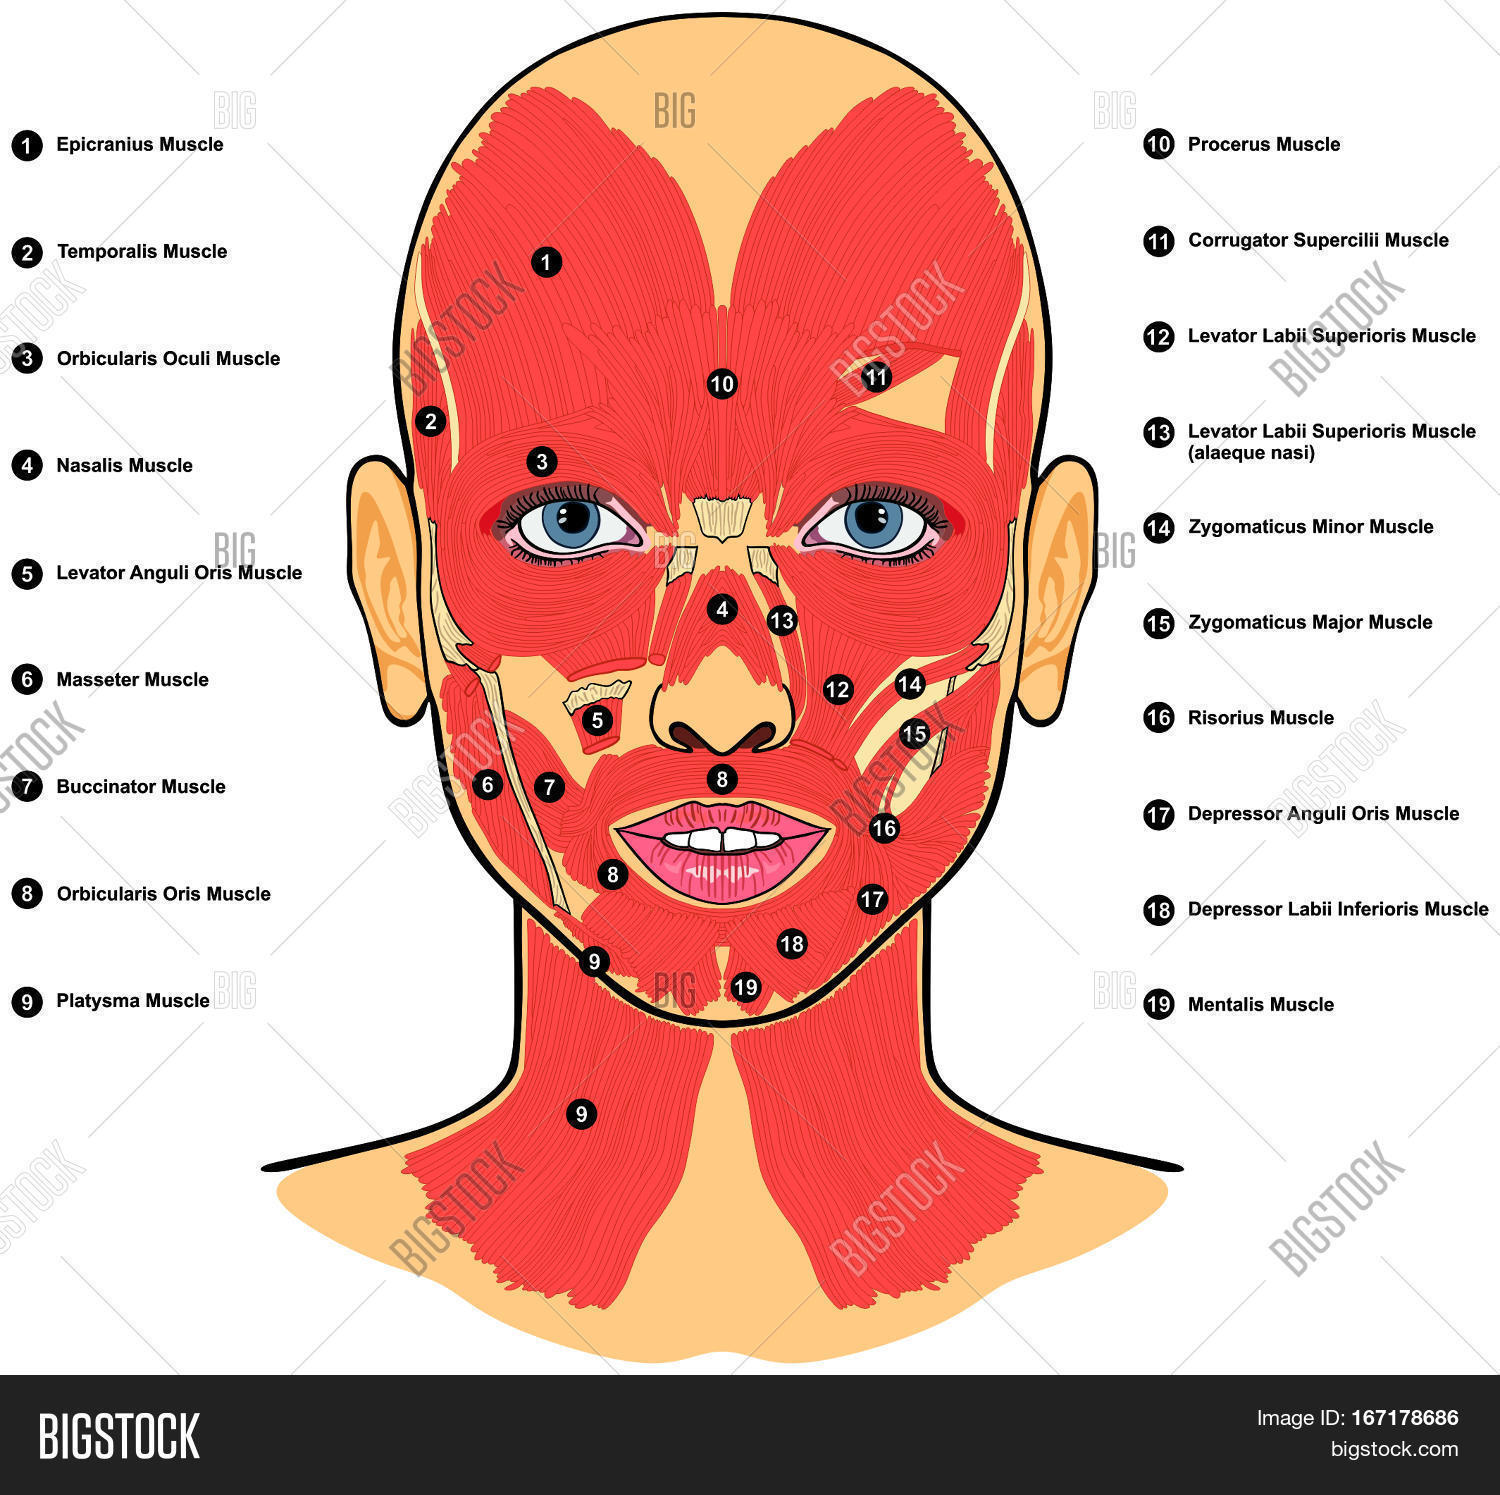 Human Face Muscles Image Amp Photo Free Trial